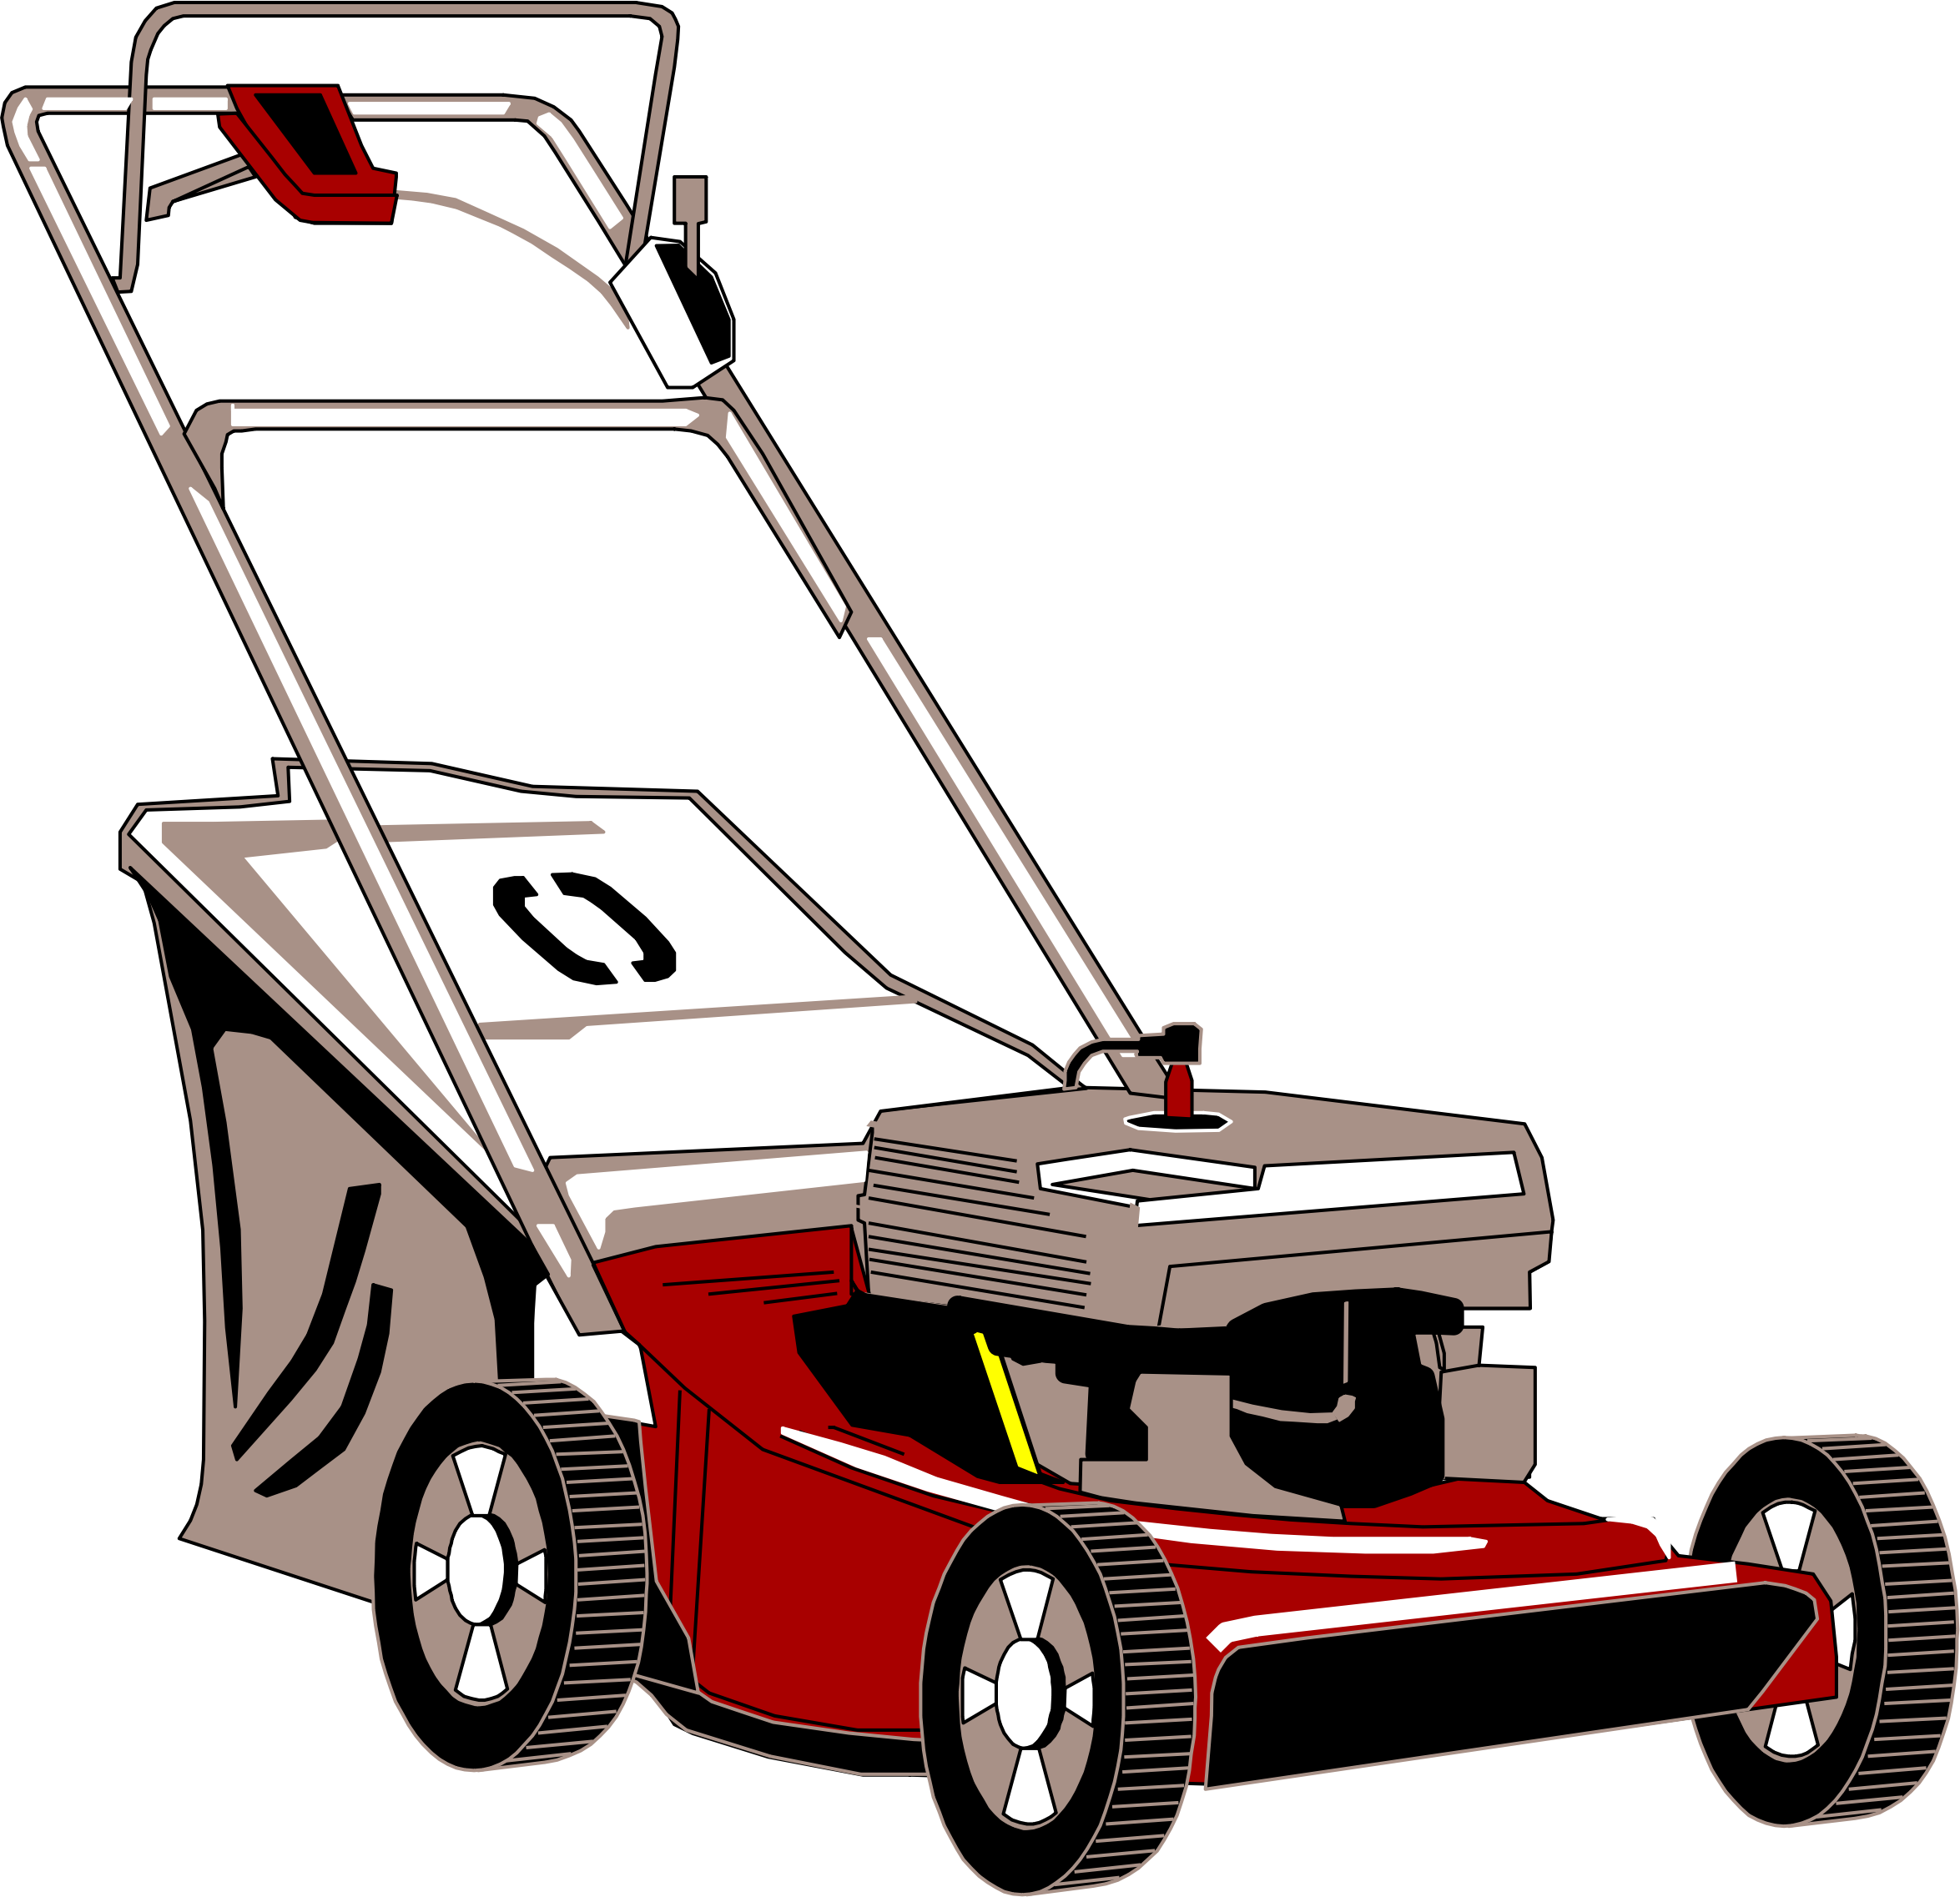 Free photo lawn mower. Mowing clipart ride on